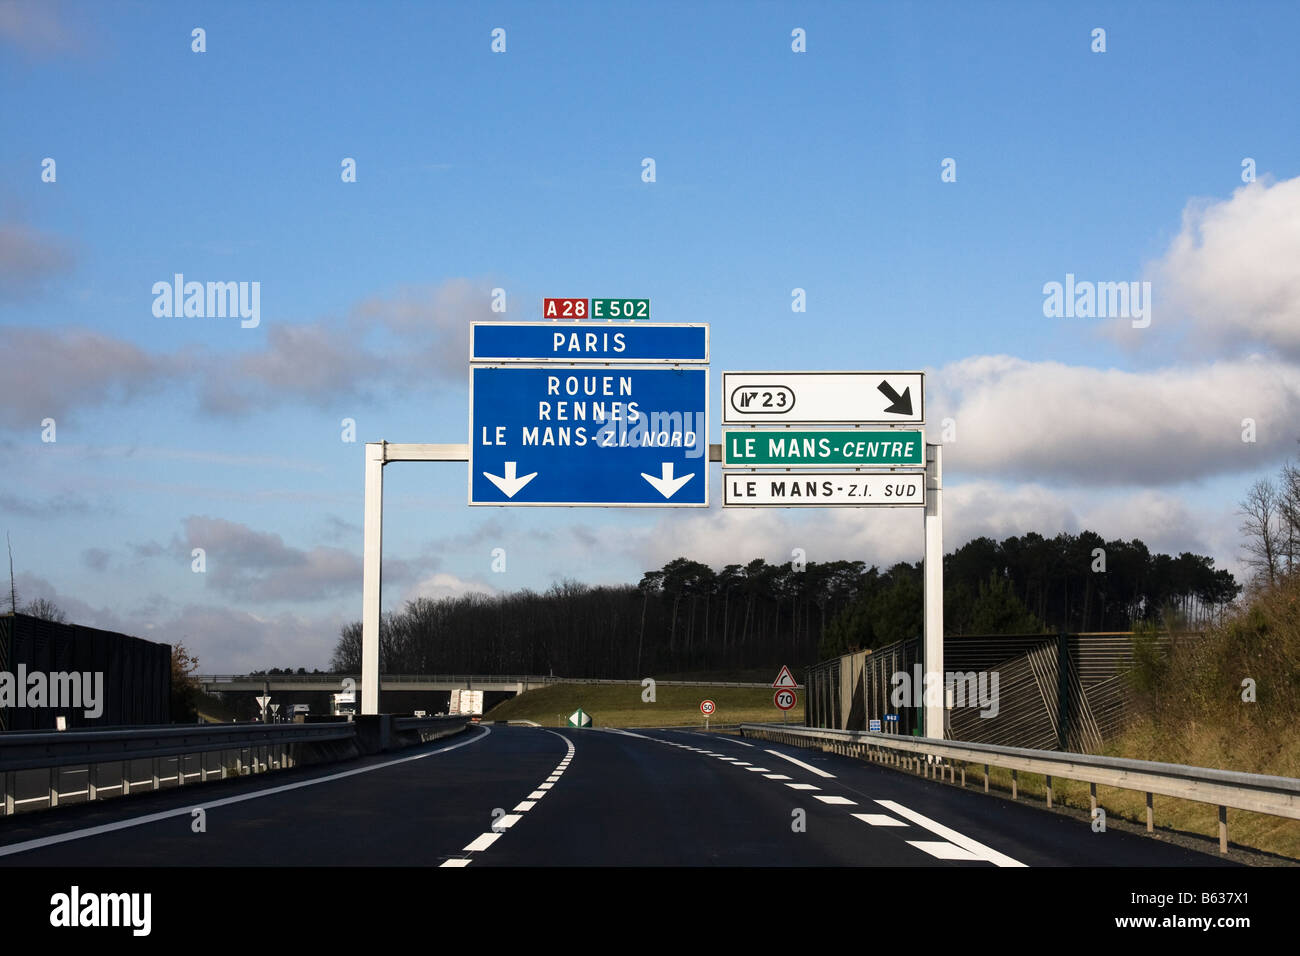 autoroute signs to paris rouen and le mans stock photo royalty free image 20970377 alamy. Black Bedroom Furniture Sets. Home Design Ideas